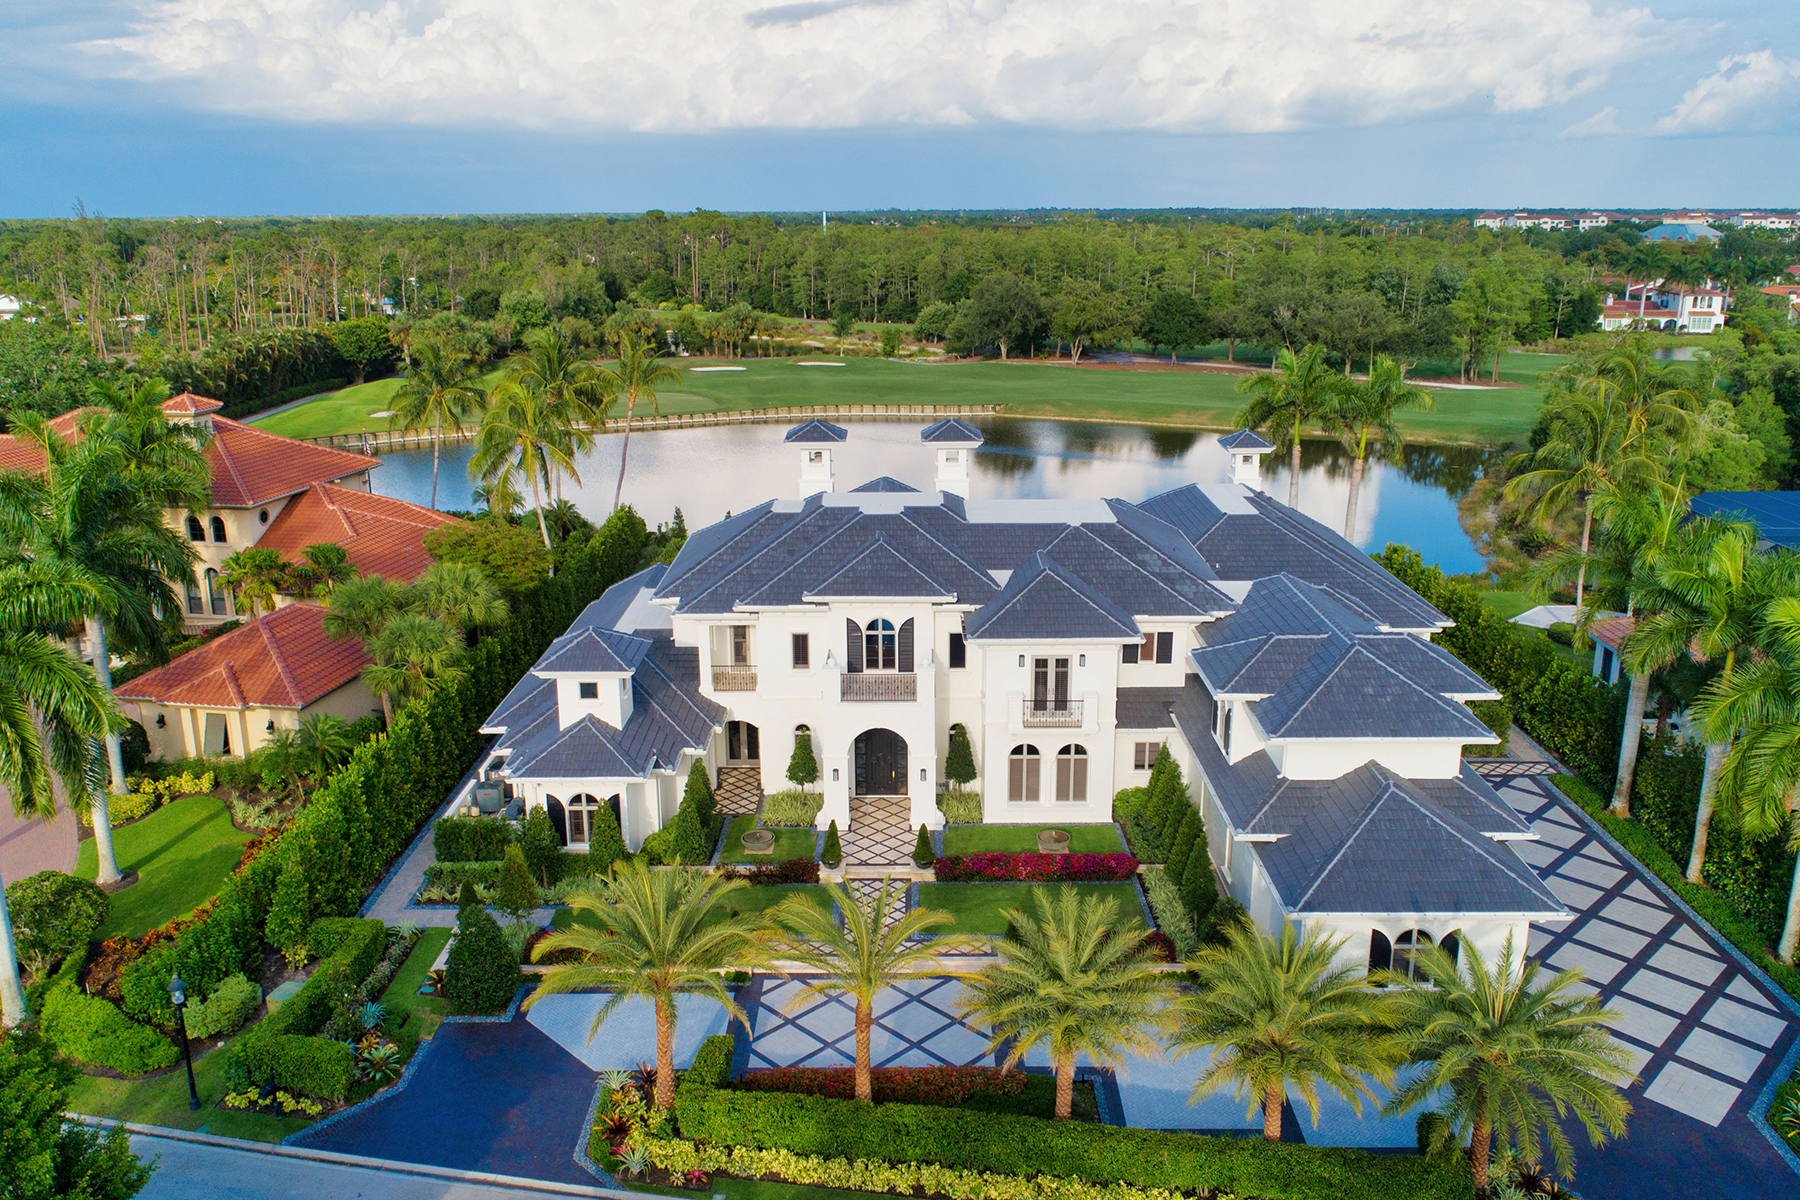 Single Family Homes for Sale at ESTUARY AT GREY OAKS 1420 Nighthawk Point, Naples, Florida 34105 United States